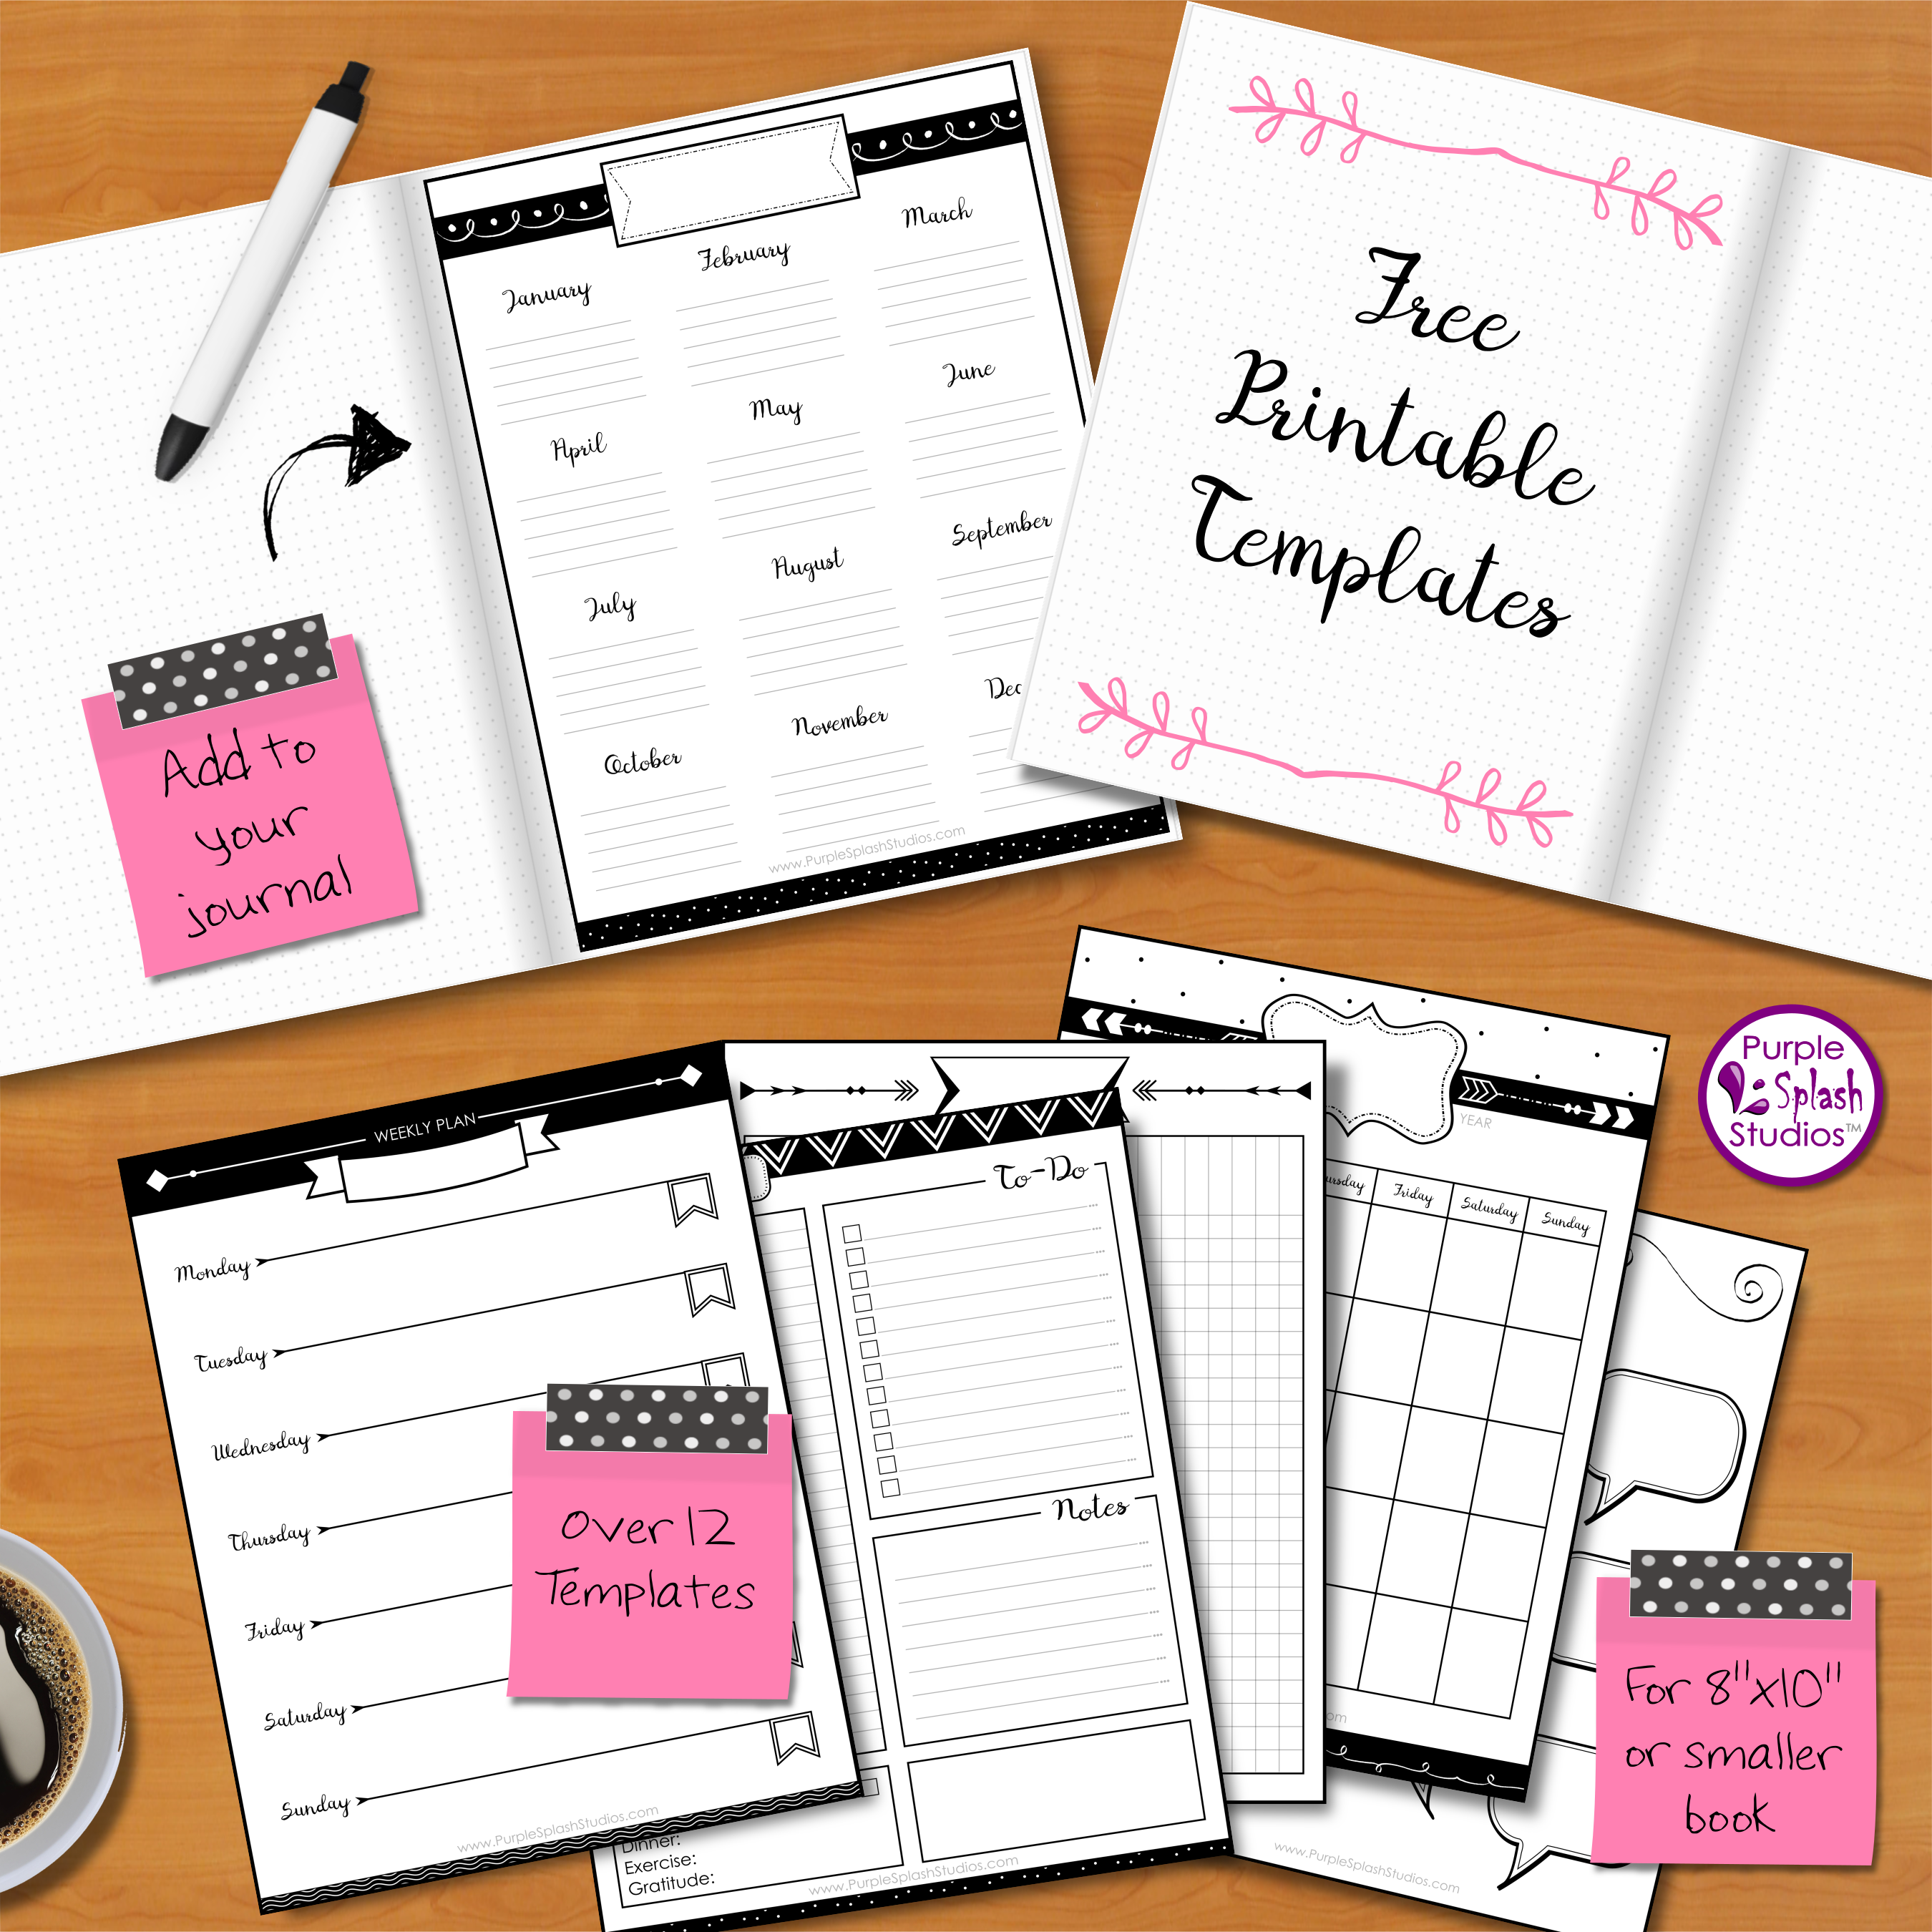 Free Printable Bullet Journal Templates. Over 12 layouts including ...